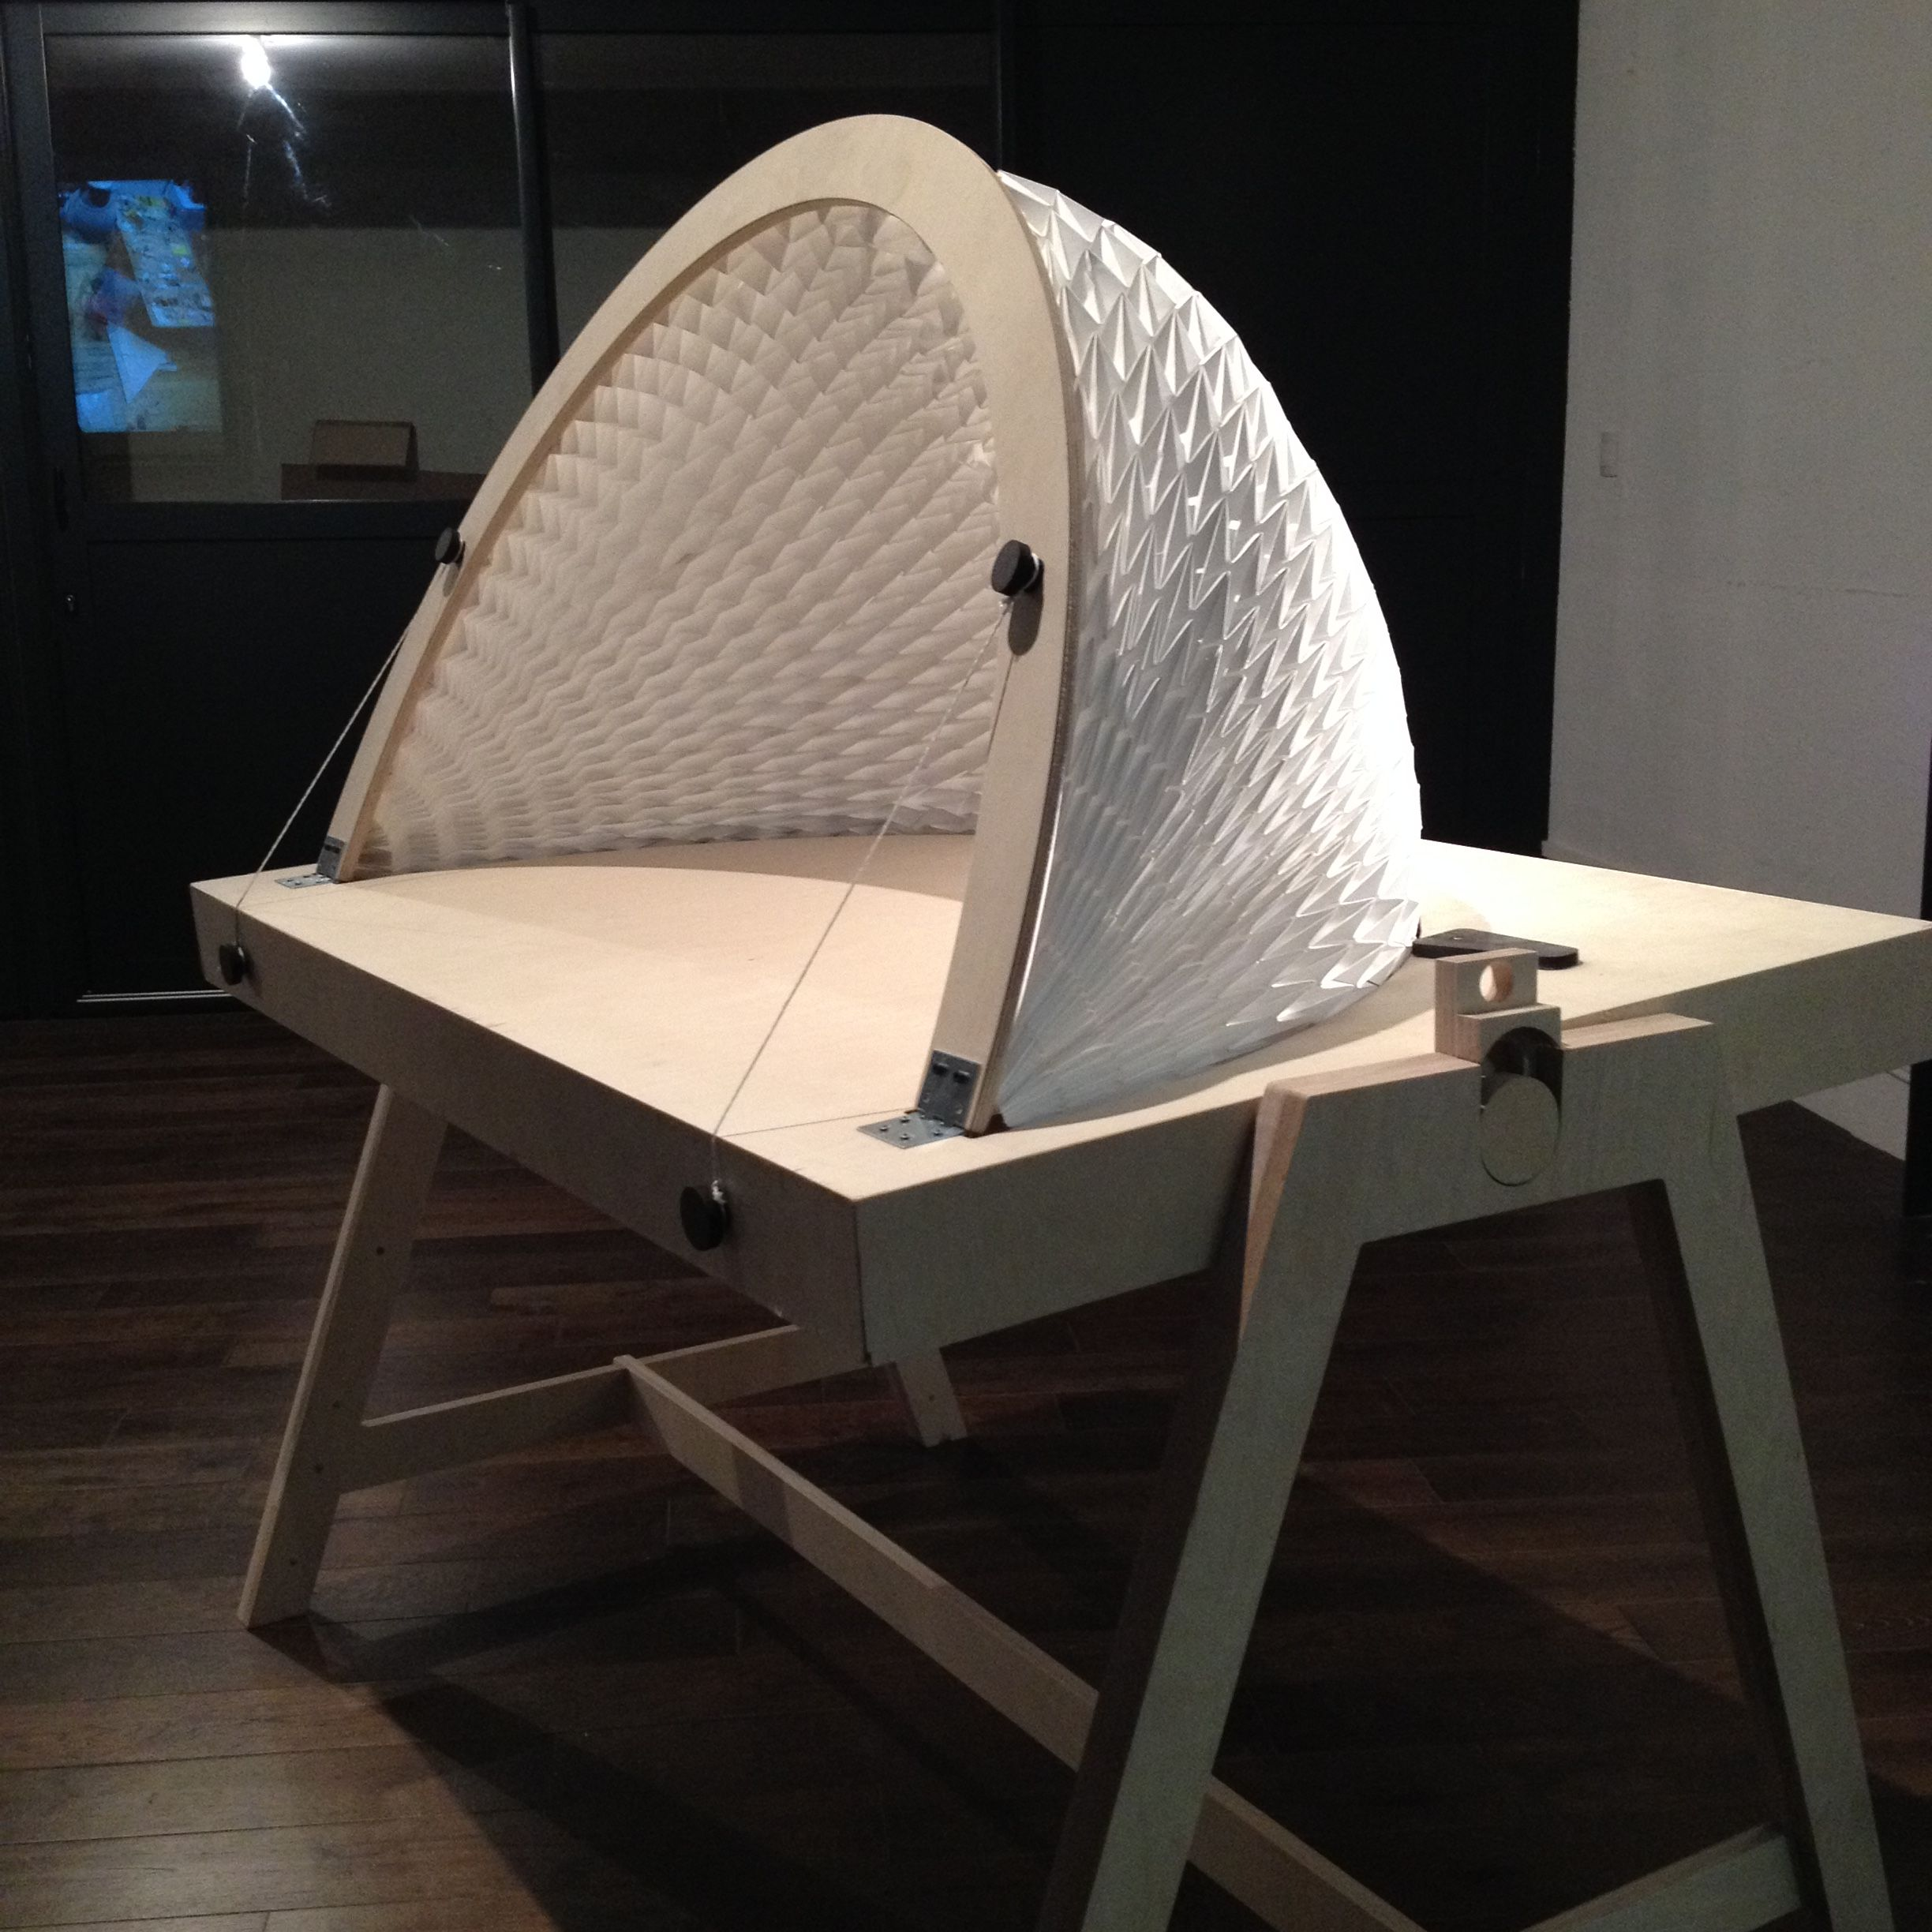 Origami Table - folding tyvek dome - Paris Design Week ... - photo#19